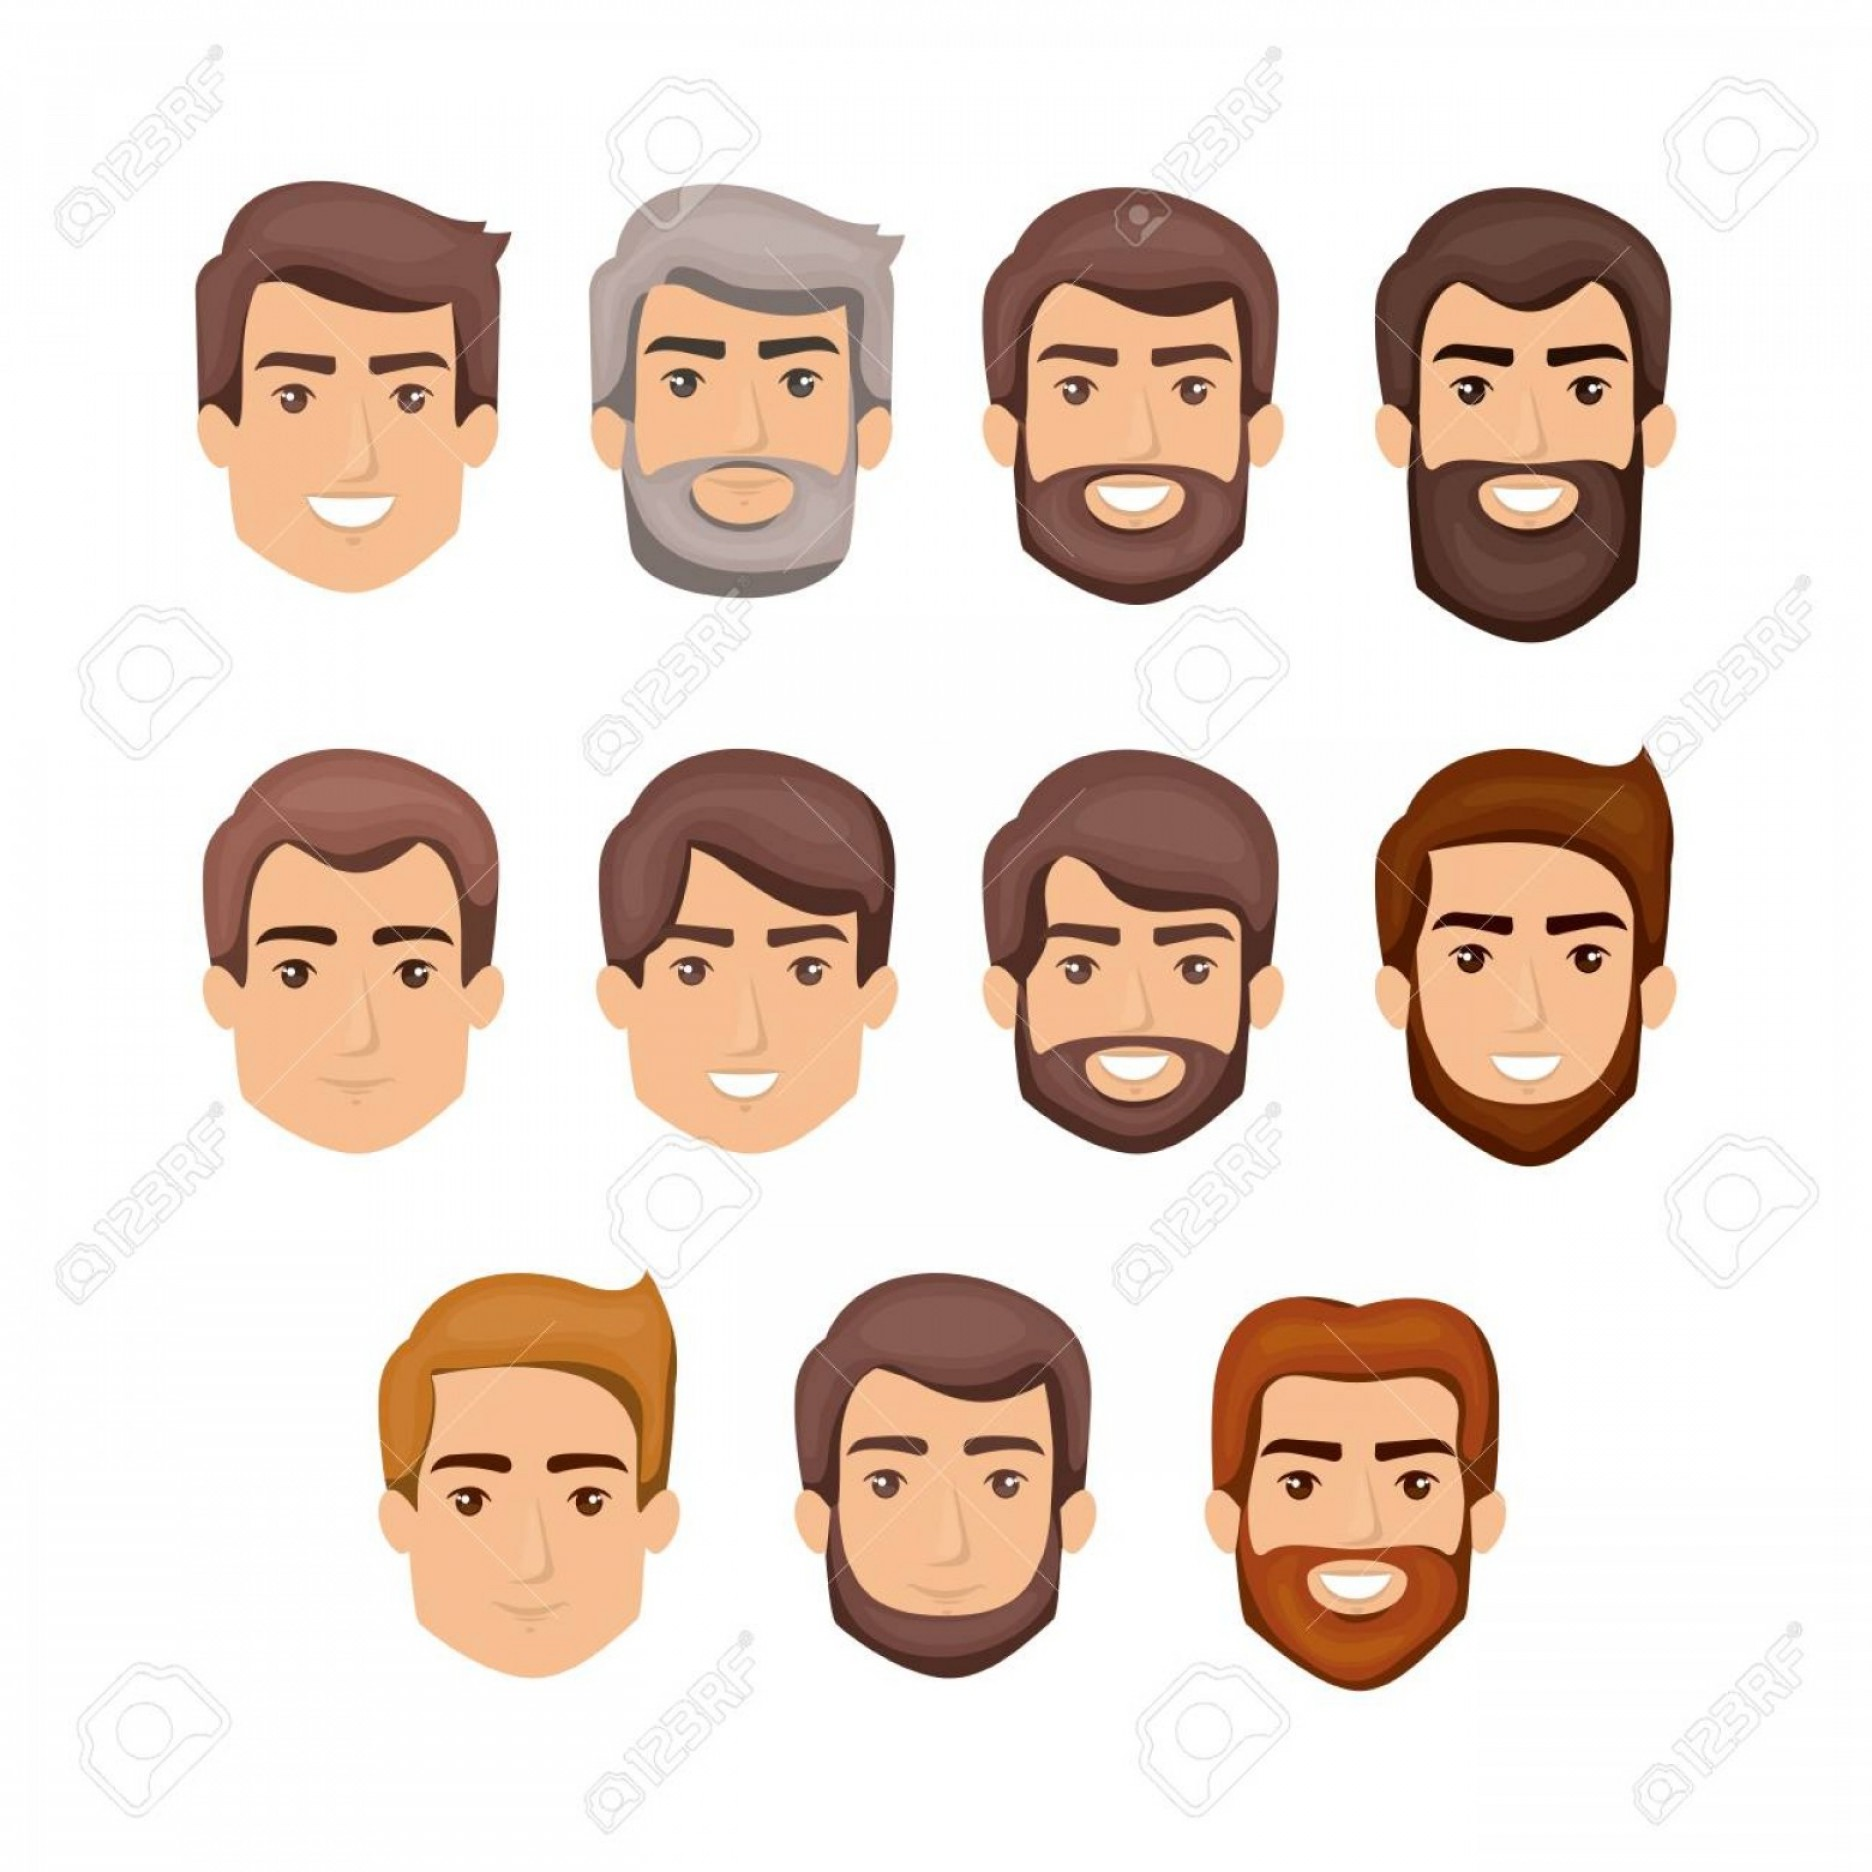 Vector Male Fade Hair: Photowhite Background With Male Faces With Hair And Beard Styles Vector Illustration